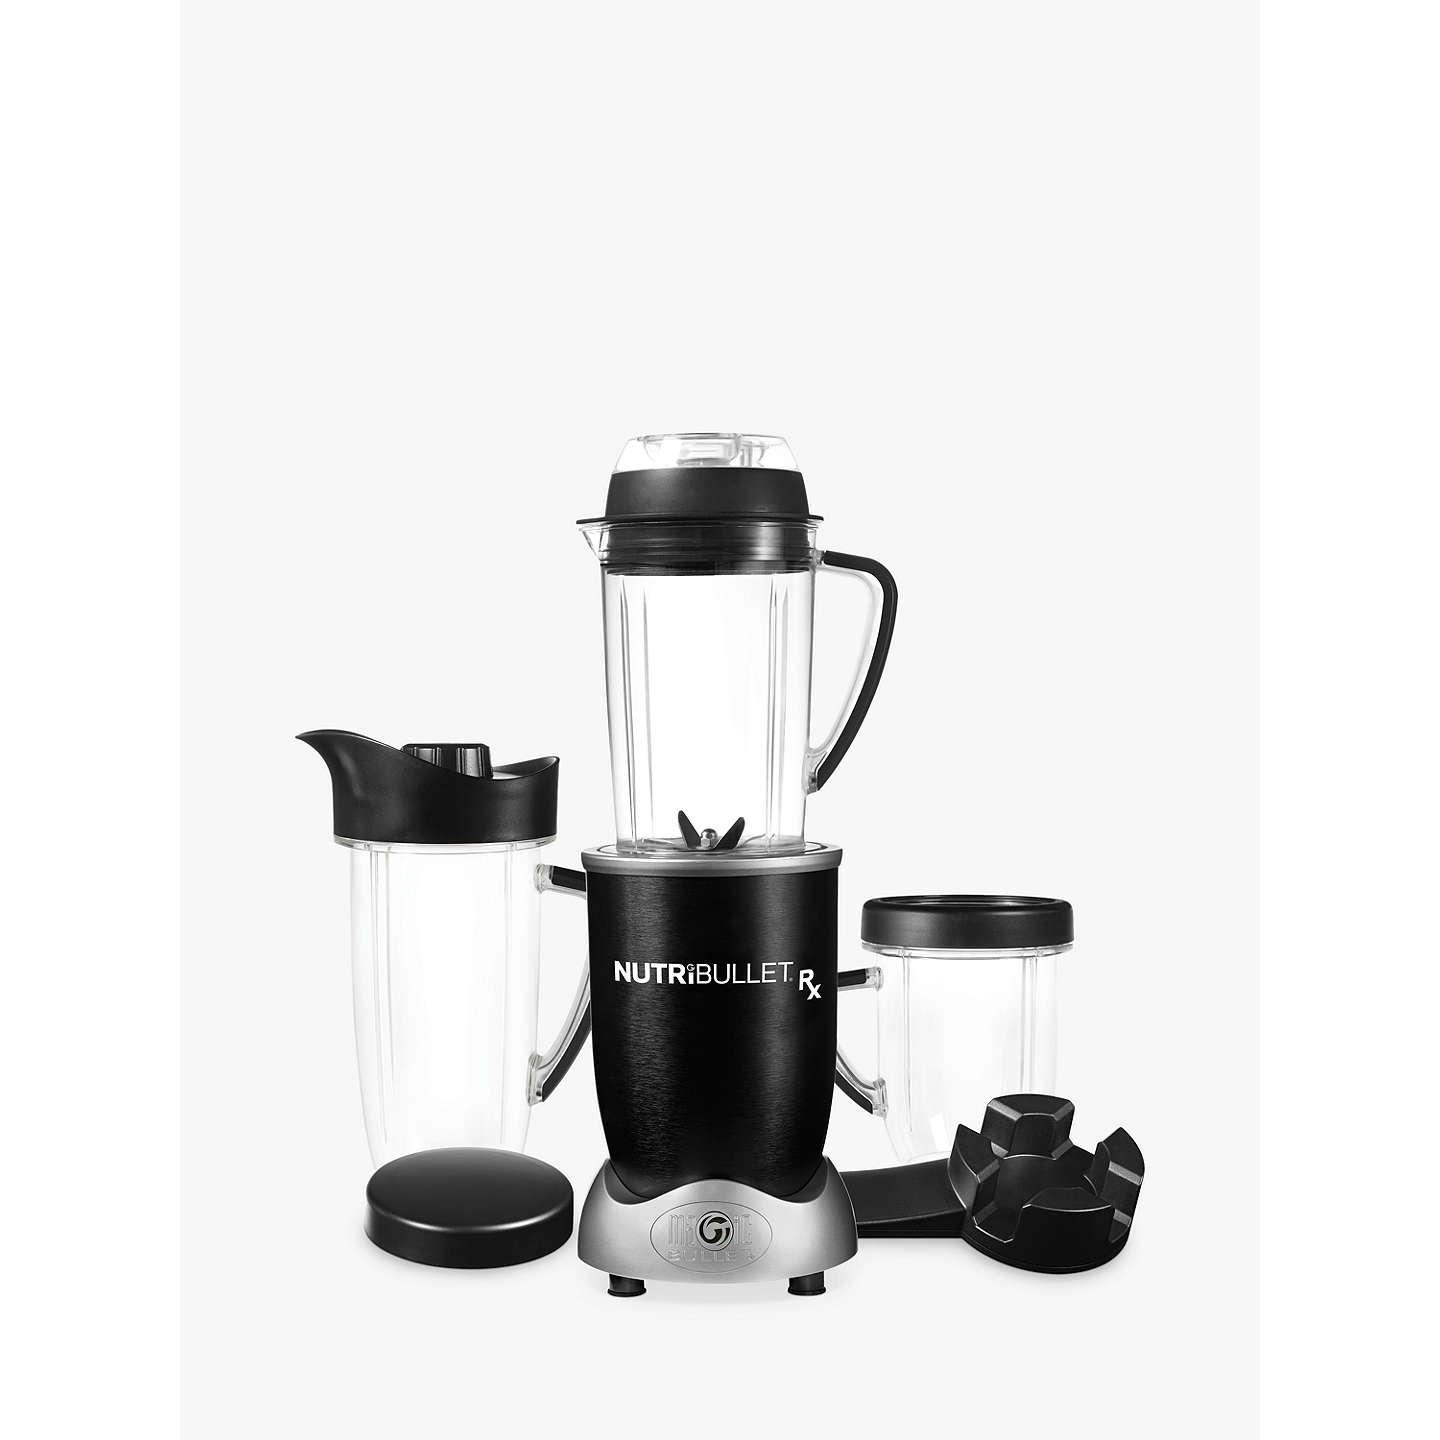 BuyNutriBullet Rx Blender Soup Maker, Black Online at johnlewis.com